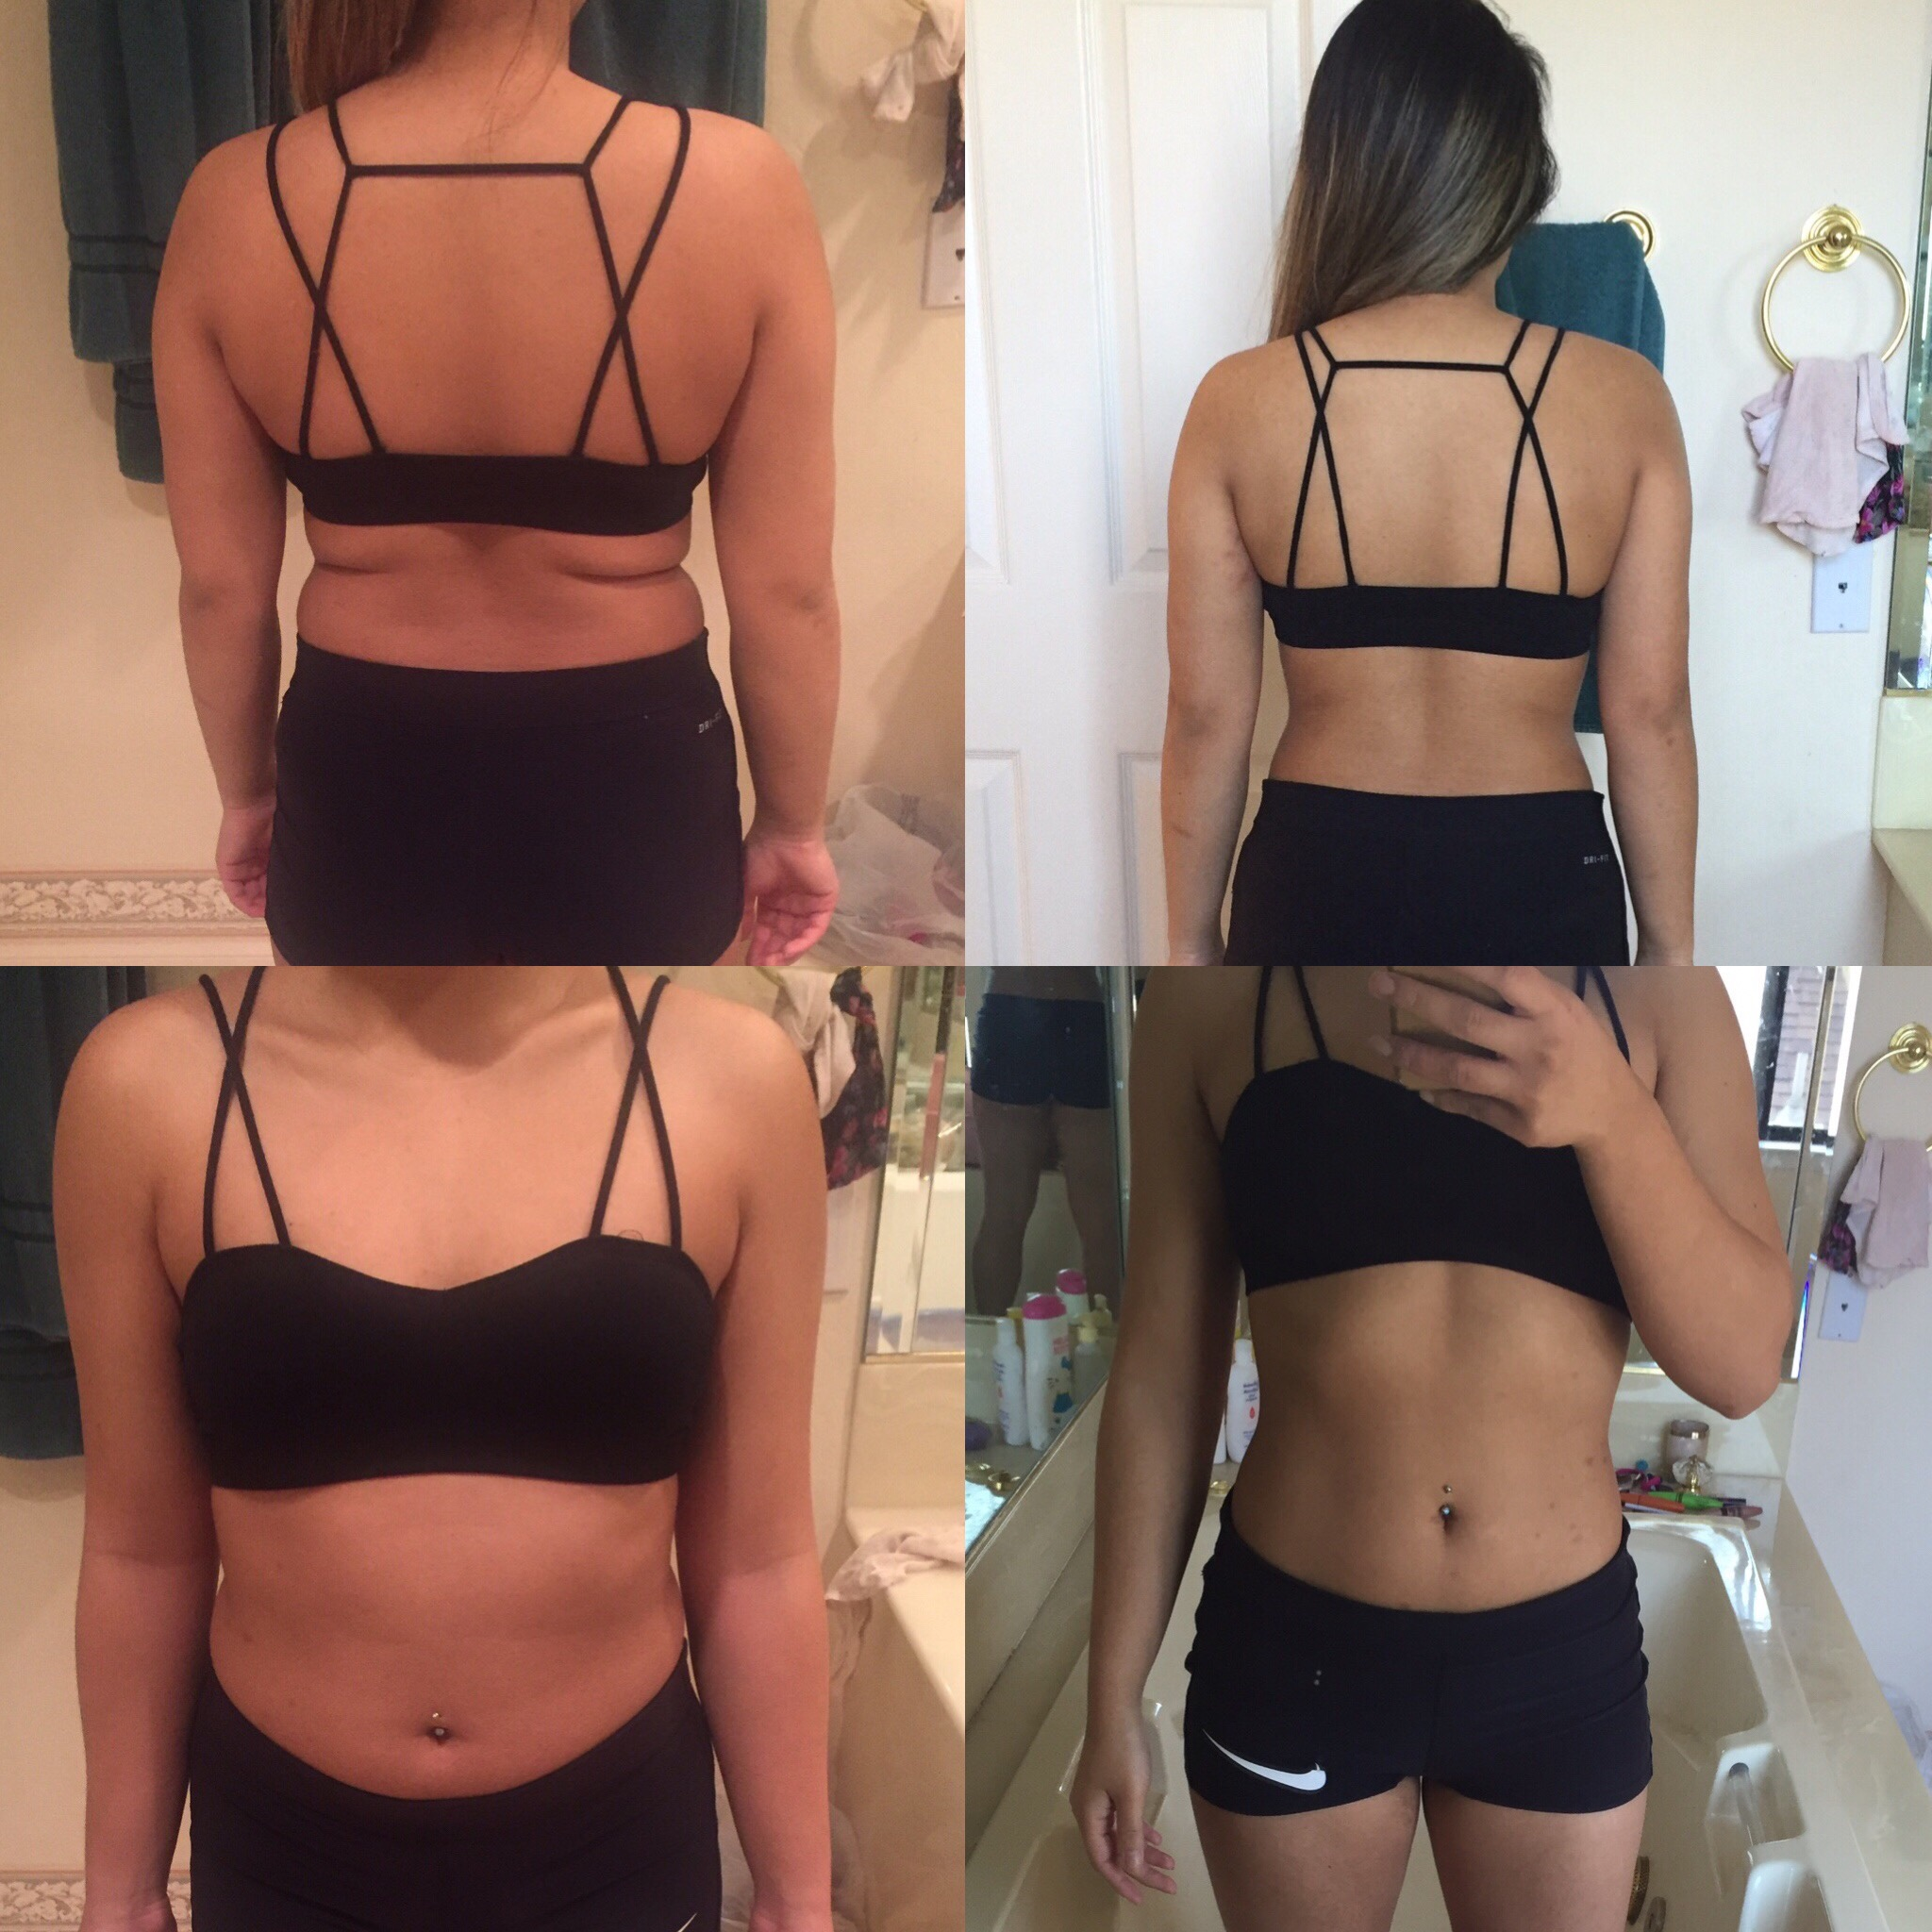 3 Month Training - One of my very first female clients Sully B. came to me for training and dieting guidance. She wanted to get in shape for a 2 week long vacation she had planned. Her dieting was 100% in control along with her cardio routine. She was very satisfied with her figure as our training came to an end.